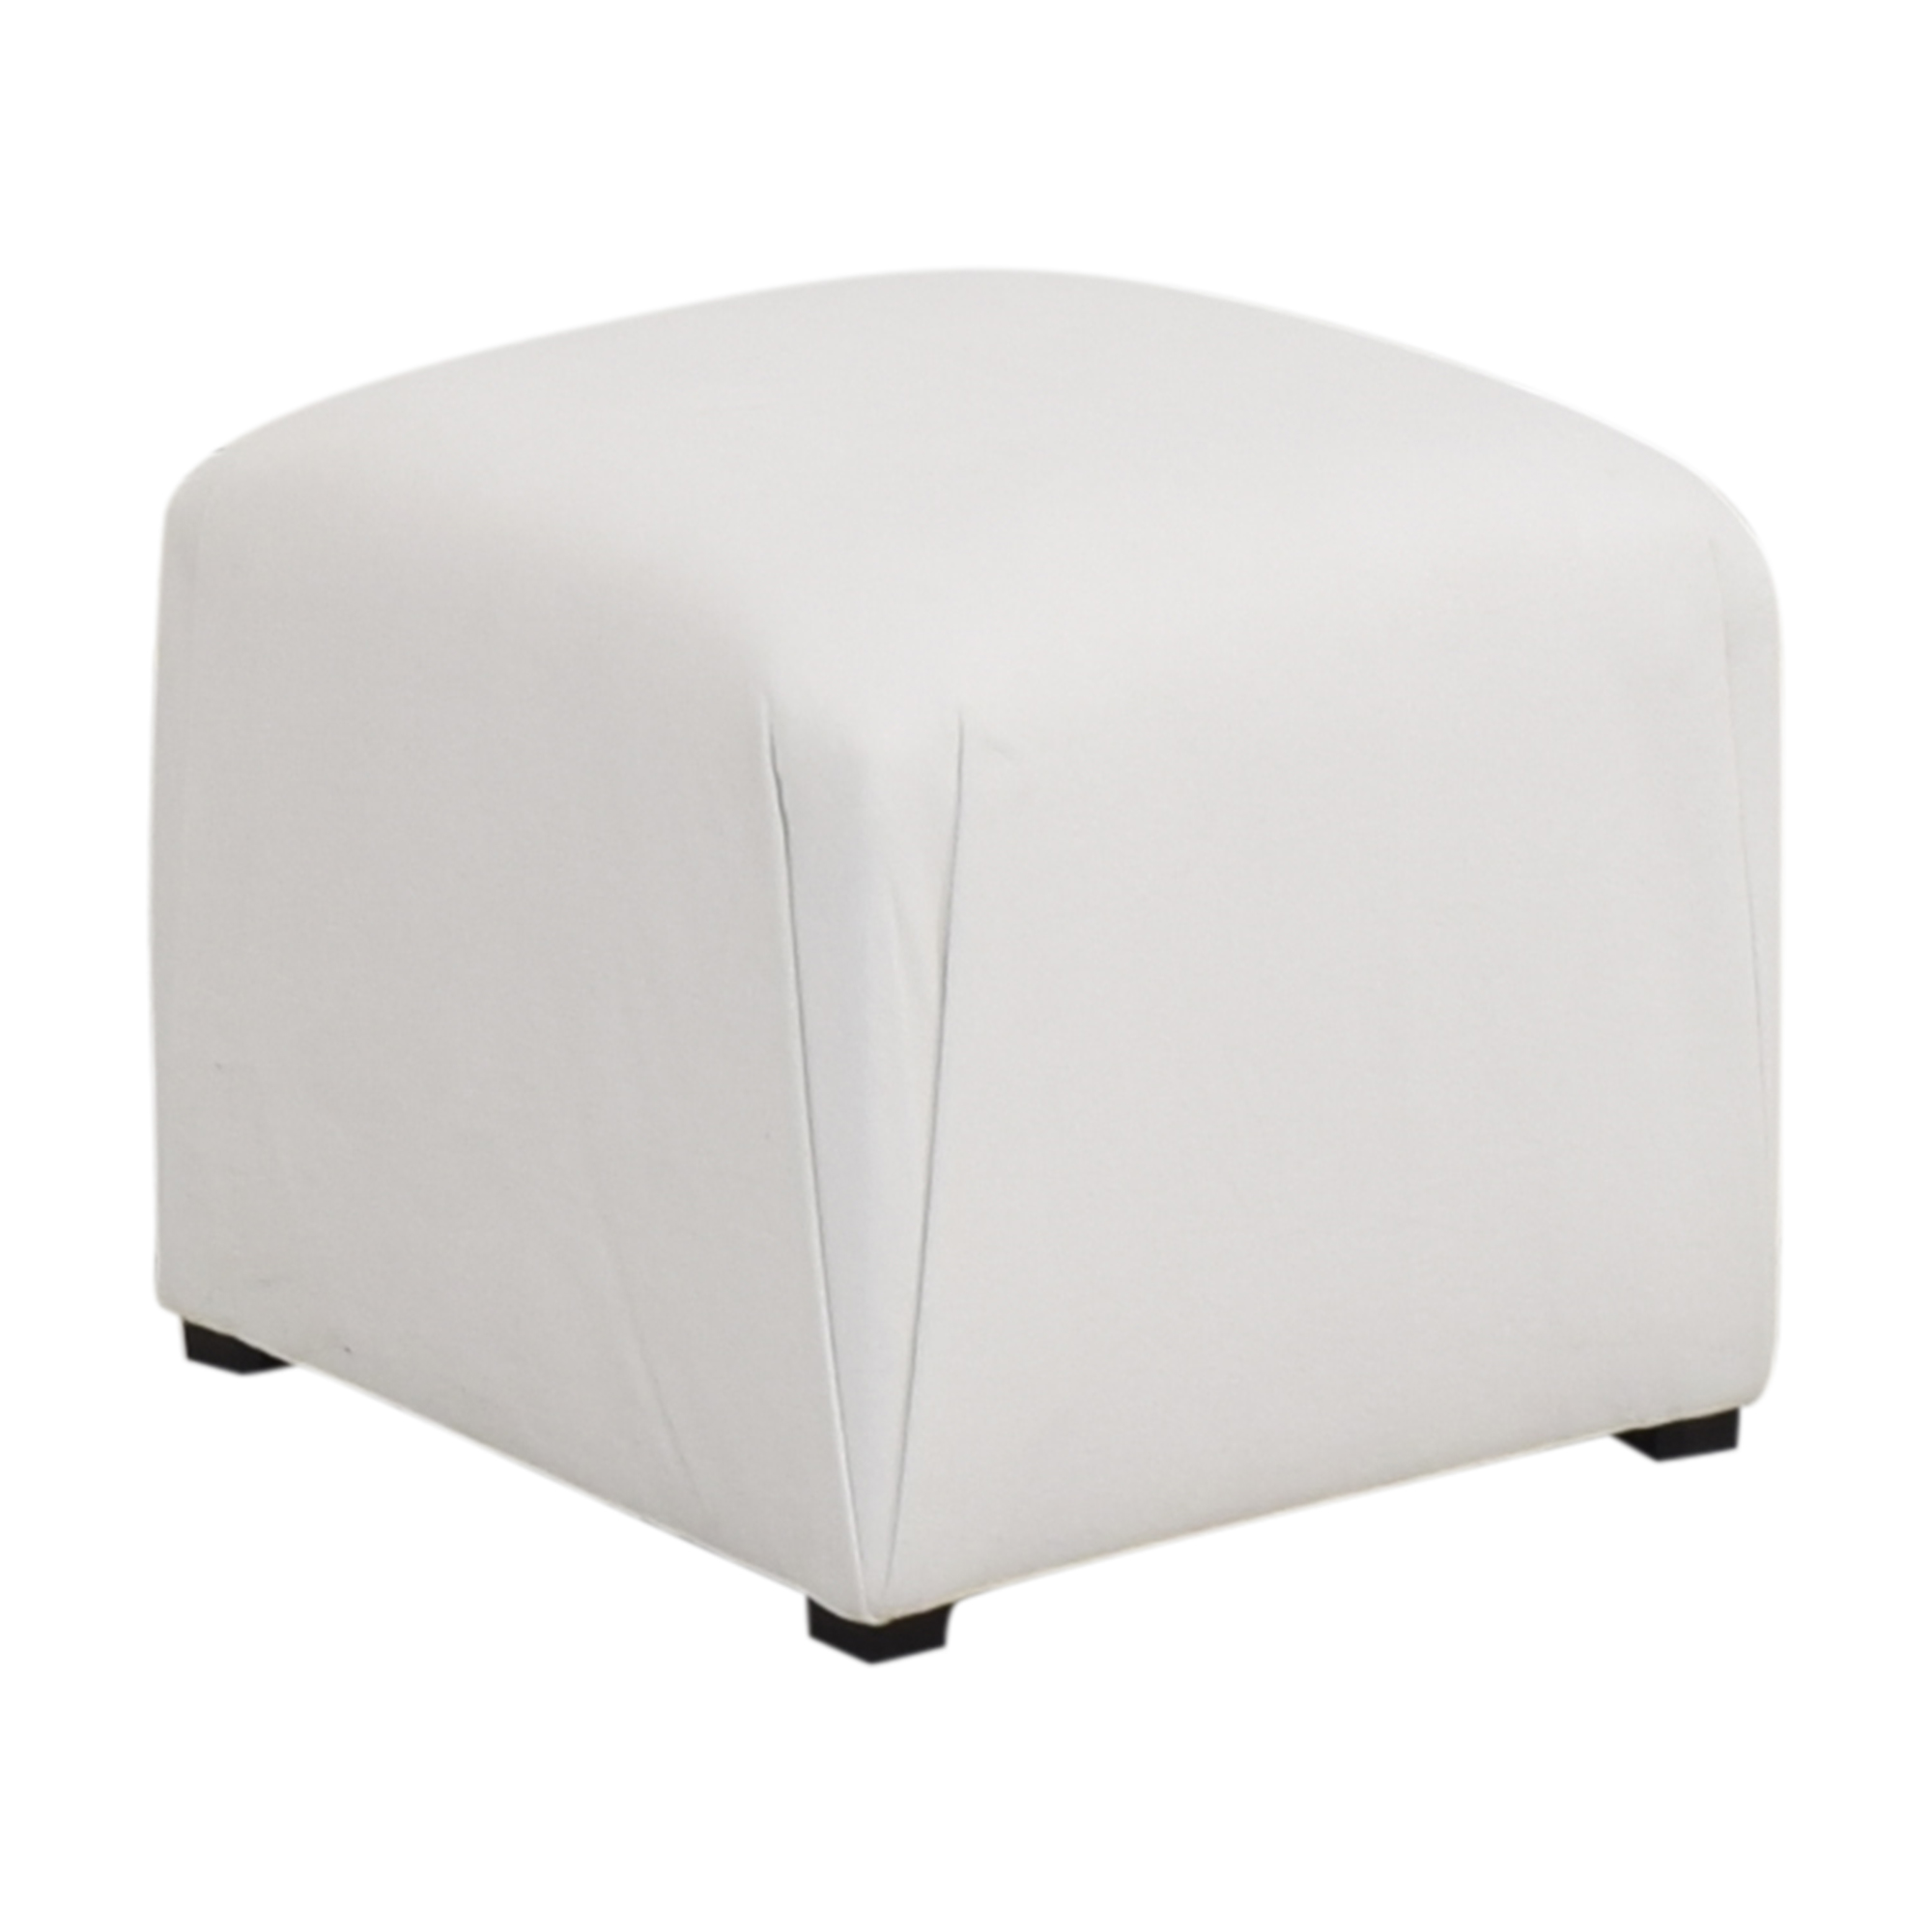 The Inside The Inside Deco Ottoman for sale